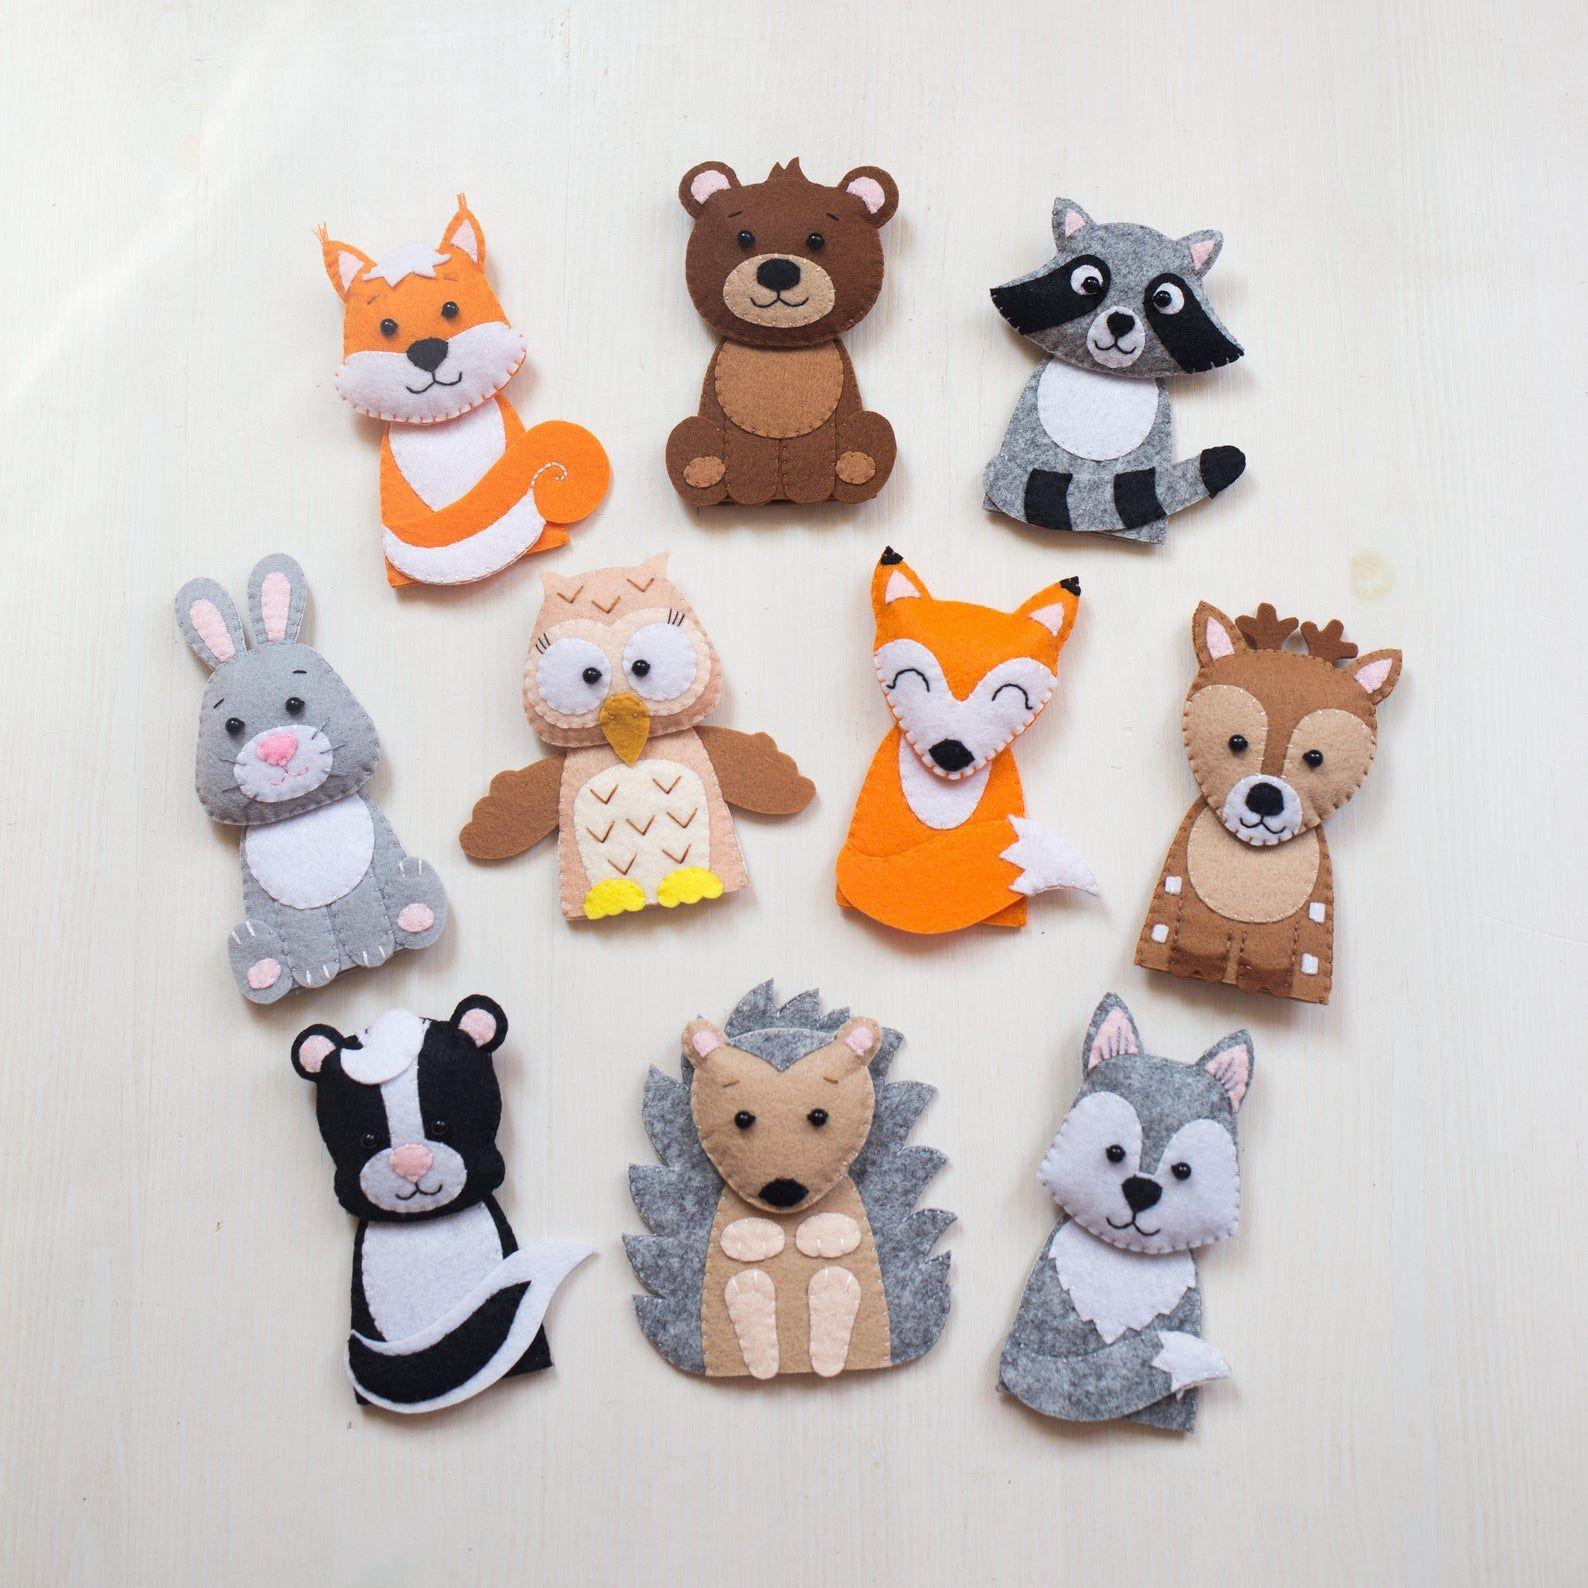 Woodland animals finger puppets Forest animals toy Quiet toys Felt finger puppets Felt animals Toddler toys Montessori toys Children puppets